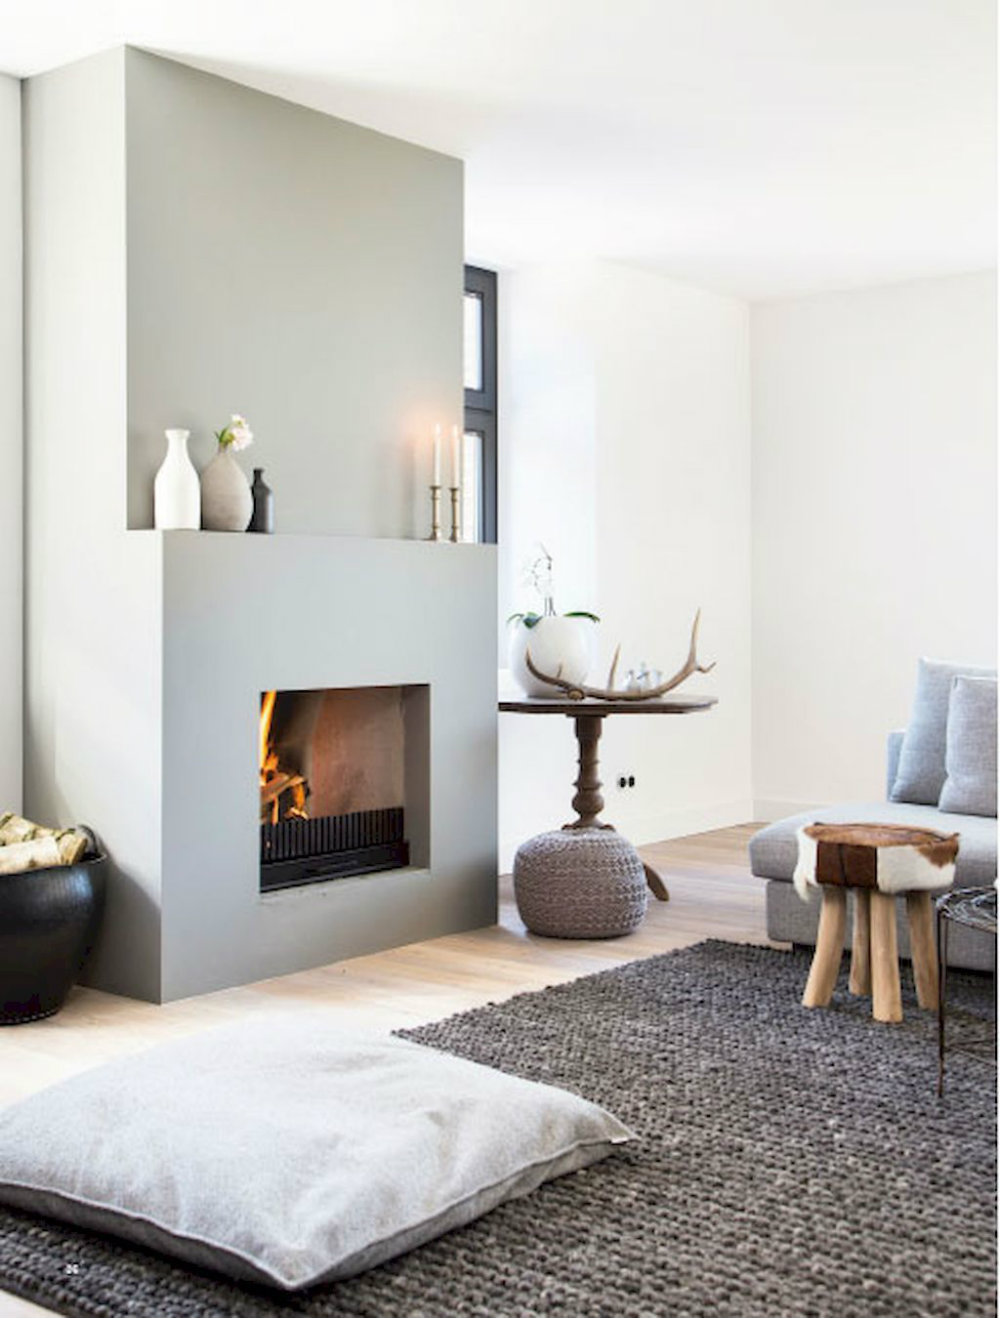 Fireplace Design Idea Luxury And Cozy Fireplaces Design Ideas